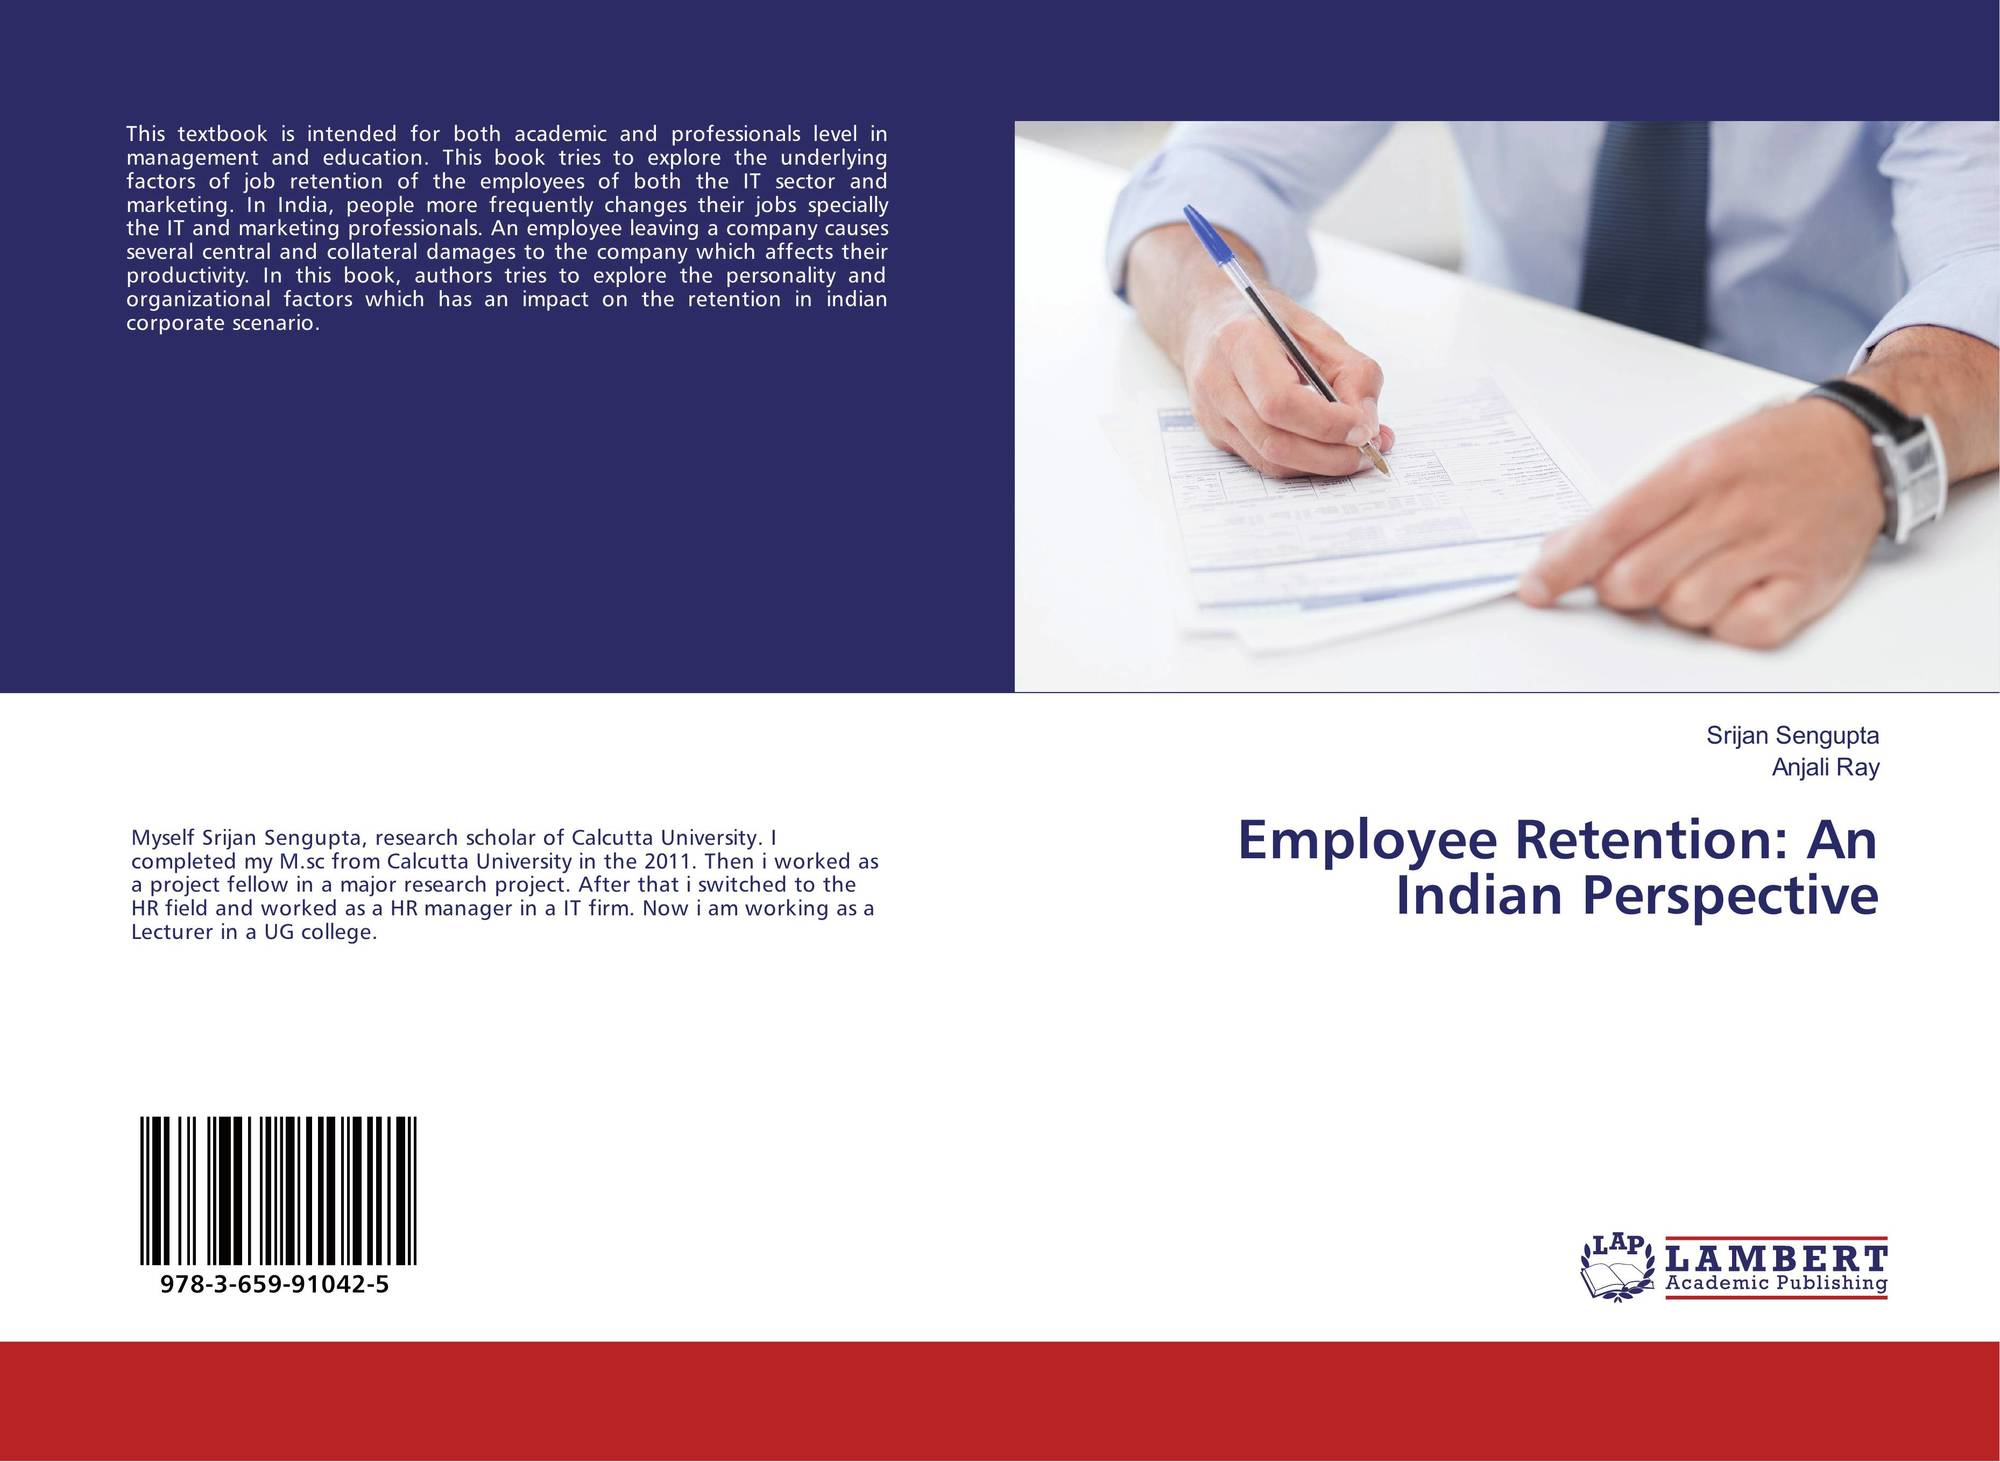 employee attrition and retention exploring the dimensions in the urban centric bpo industry Employee retention in the bpo sector posted in human resources articles the workforce is the backbone of the bpo industry and the attrition rates have becoming alarmingly high for the industry this study aimed at exploring the dimensions of attrition and retention.